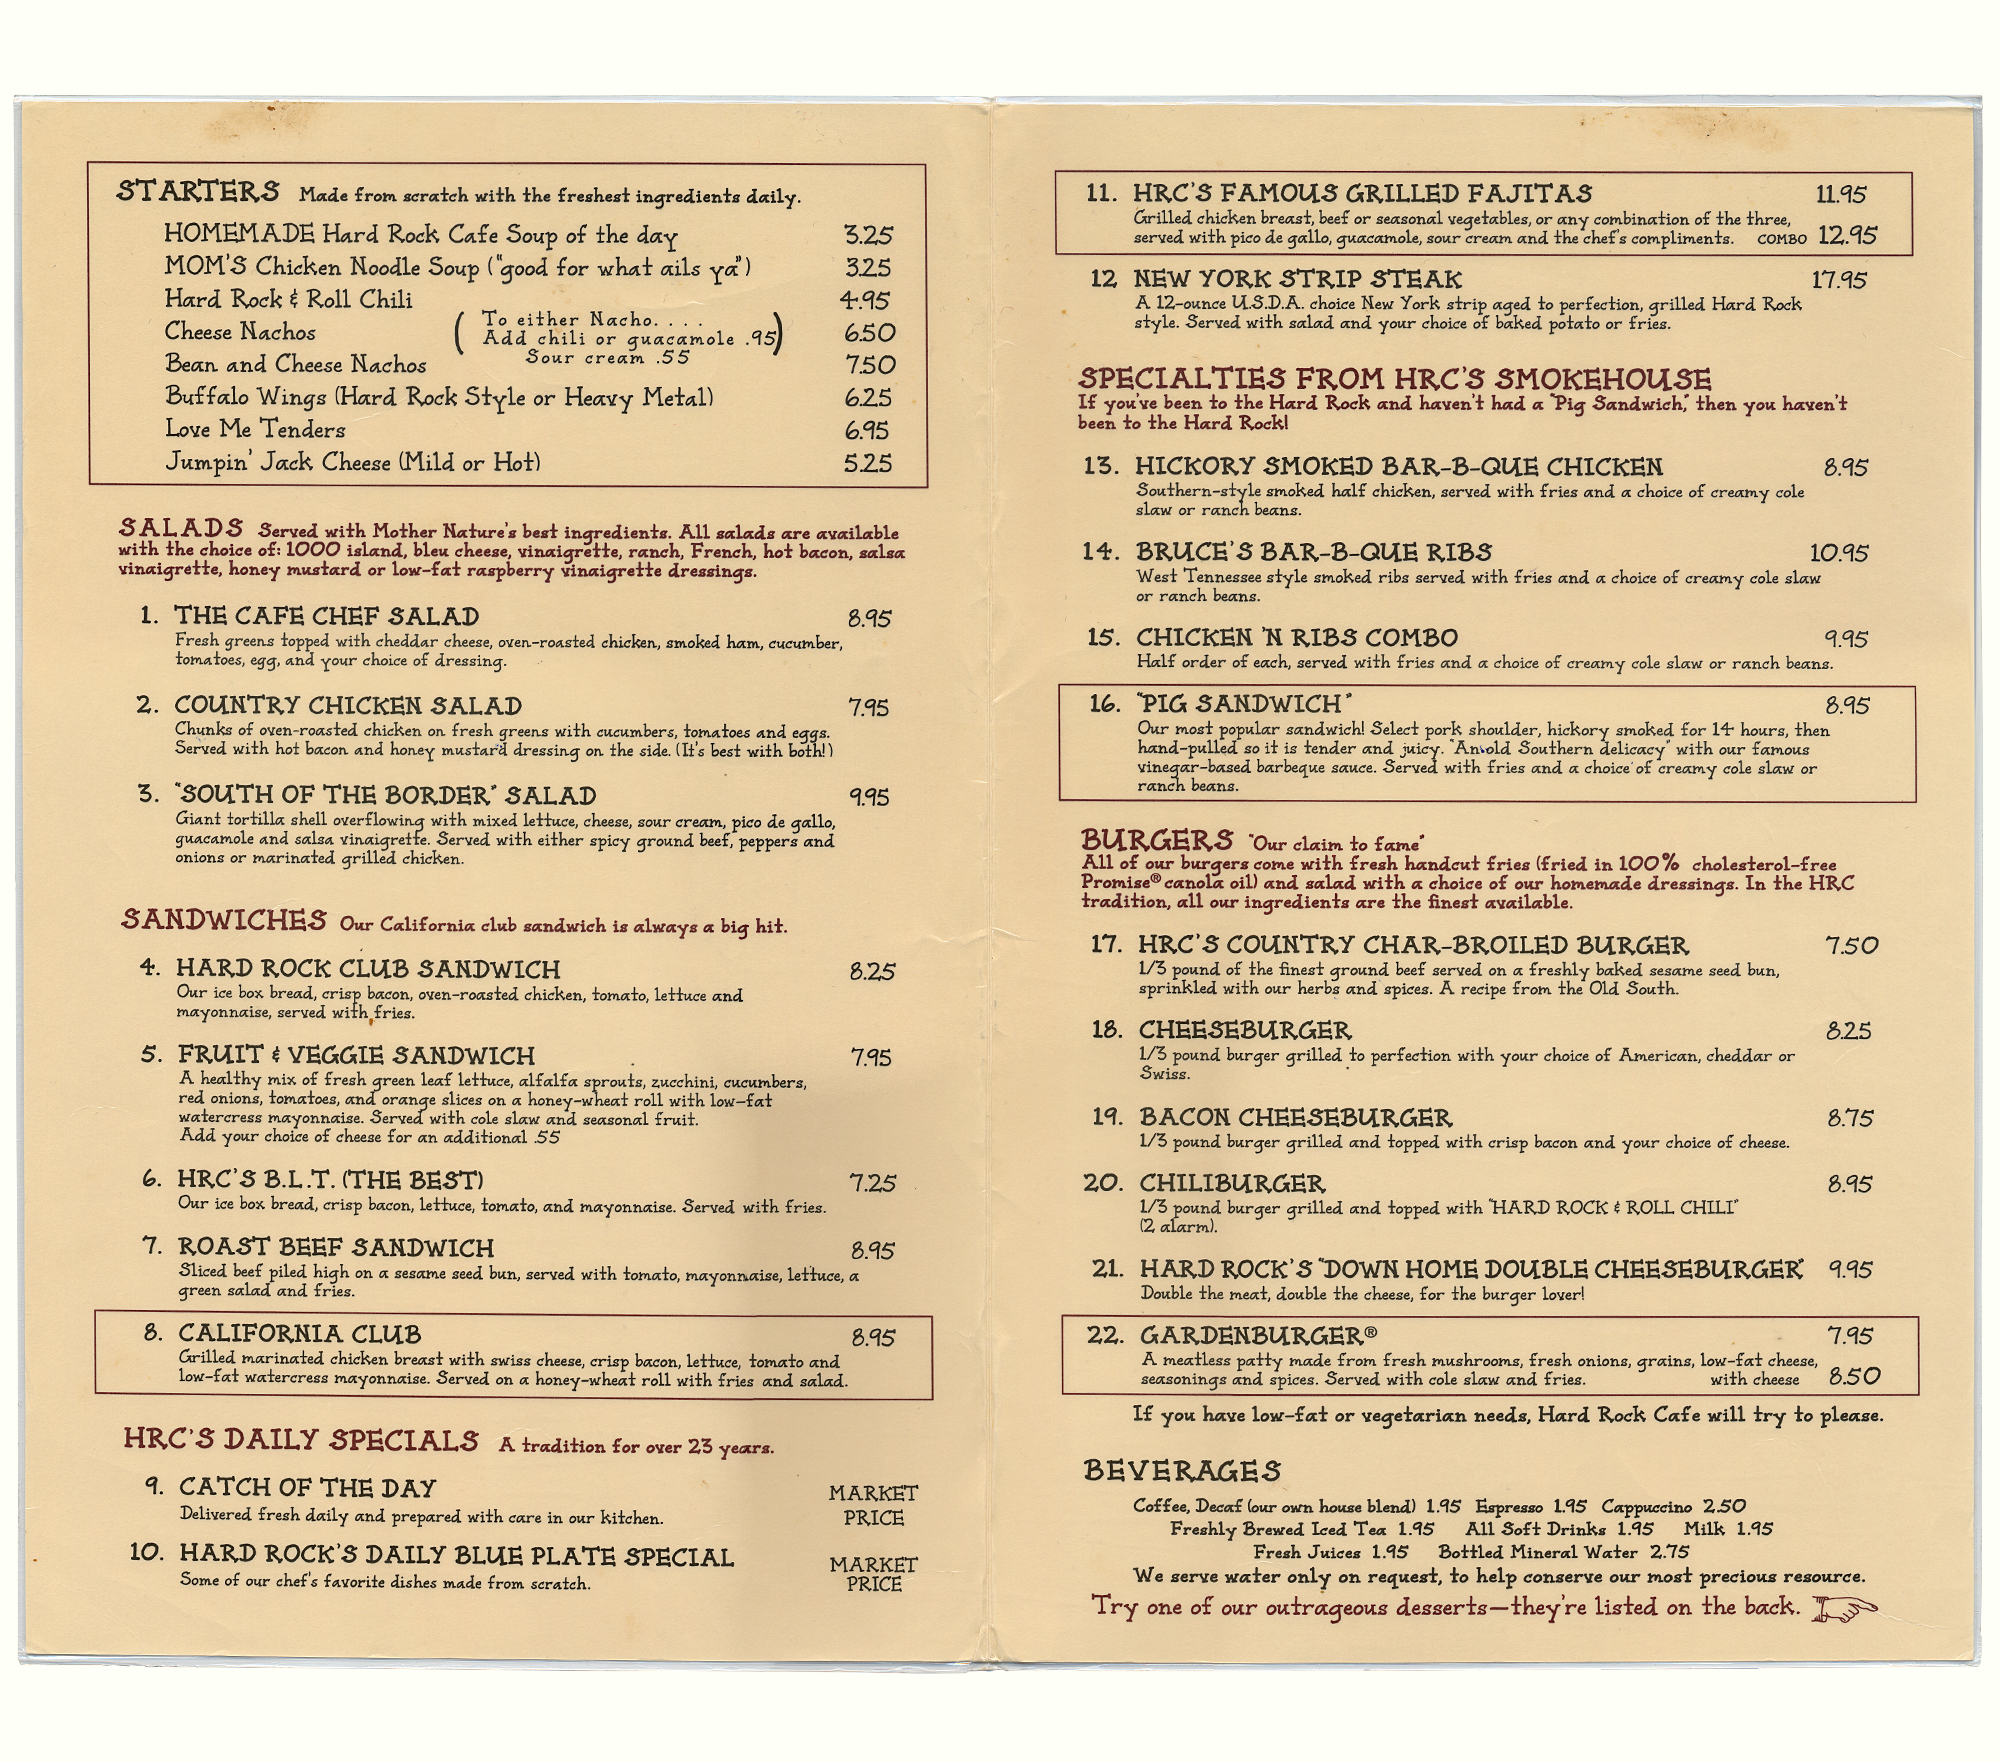 Hardrock Cafe Image Of Menu